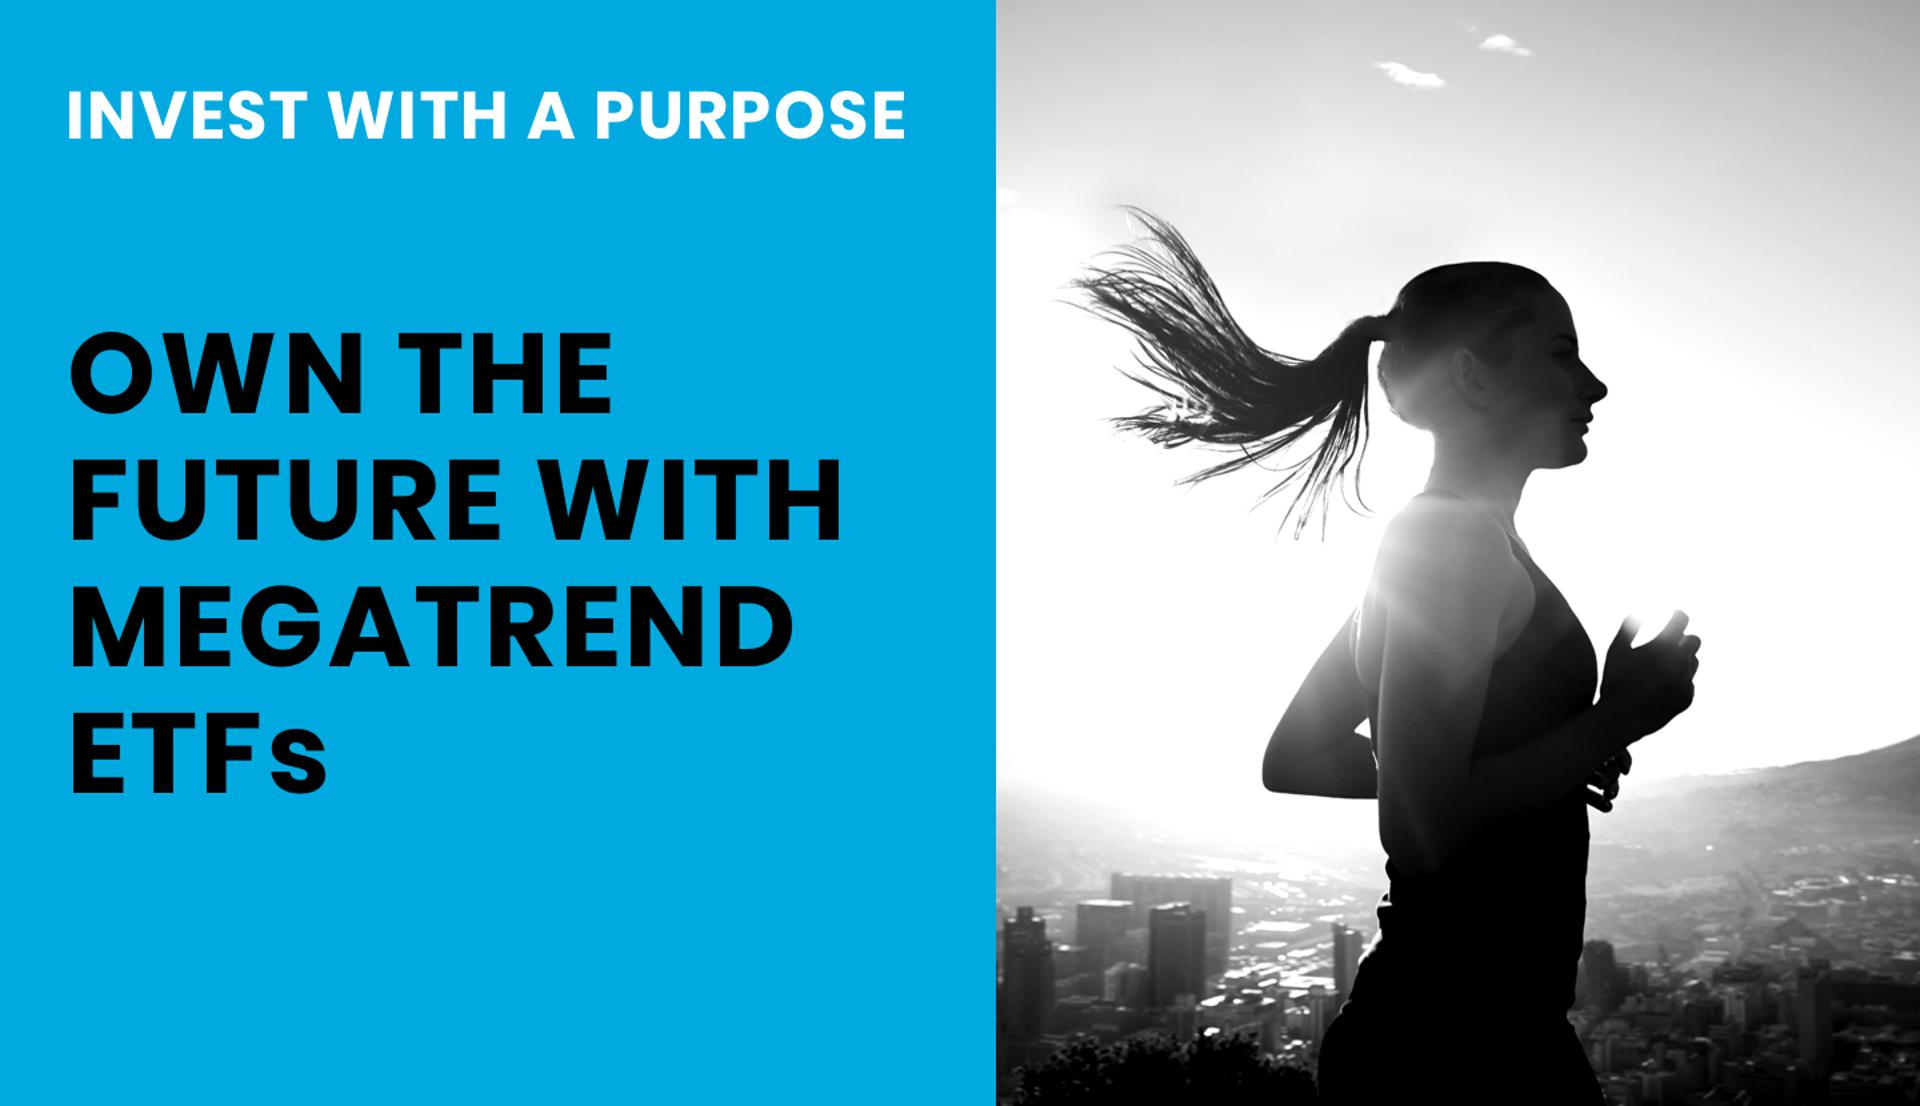 Invest With A Purpose: Own The Future With Megatrend ETFs